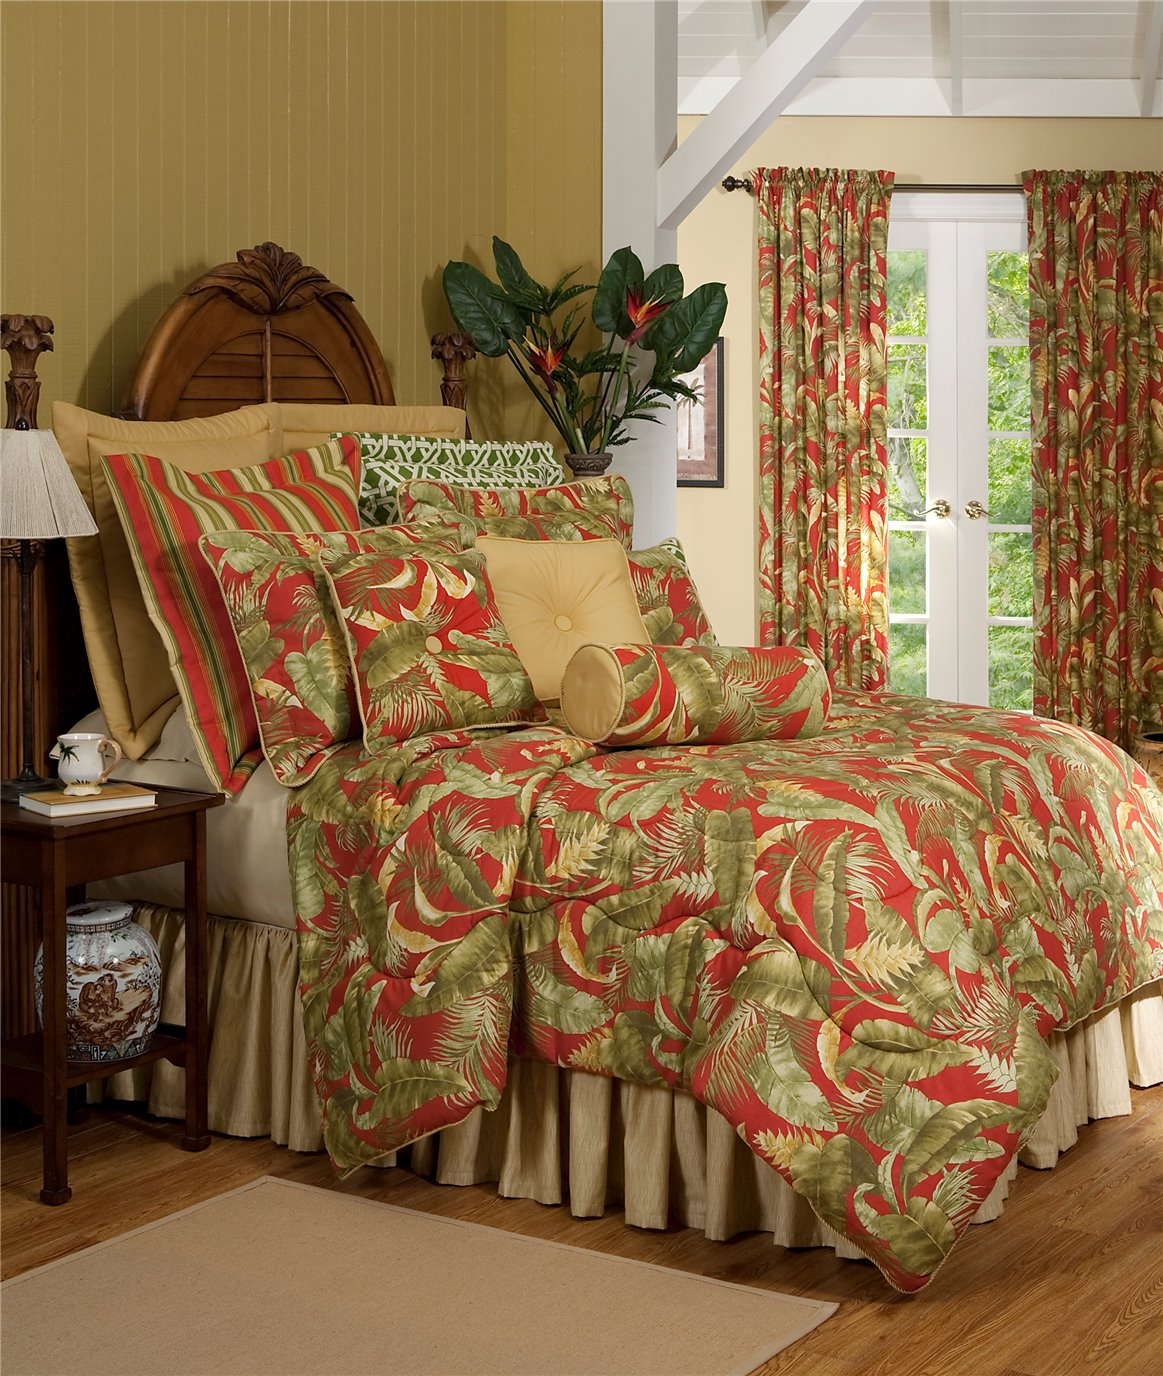 Captiva Twin Thomasville Comforter